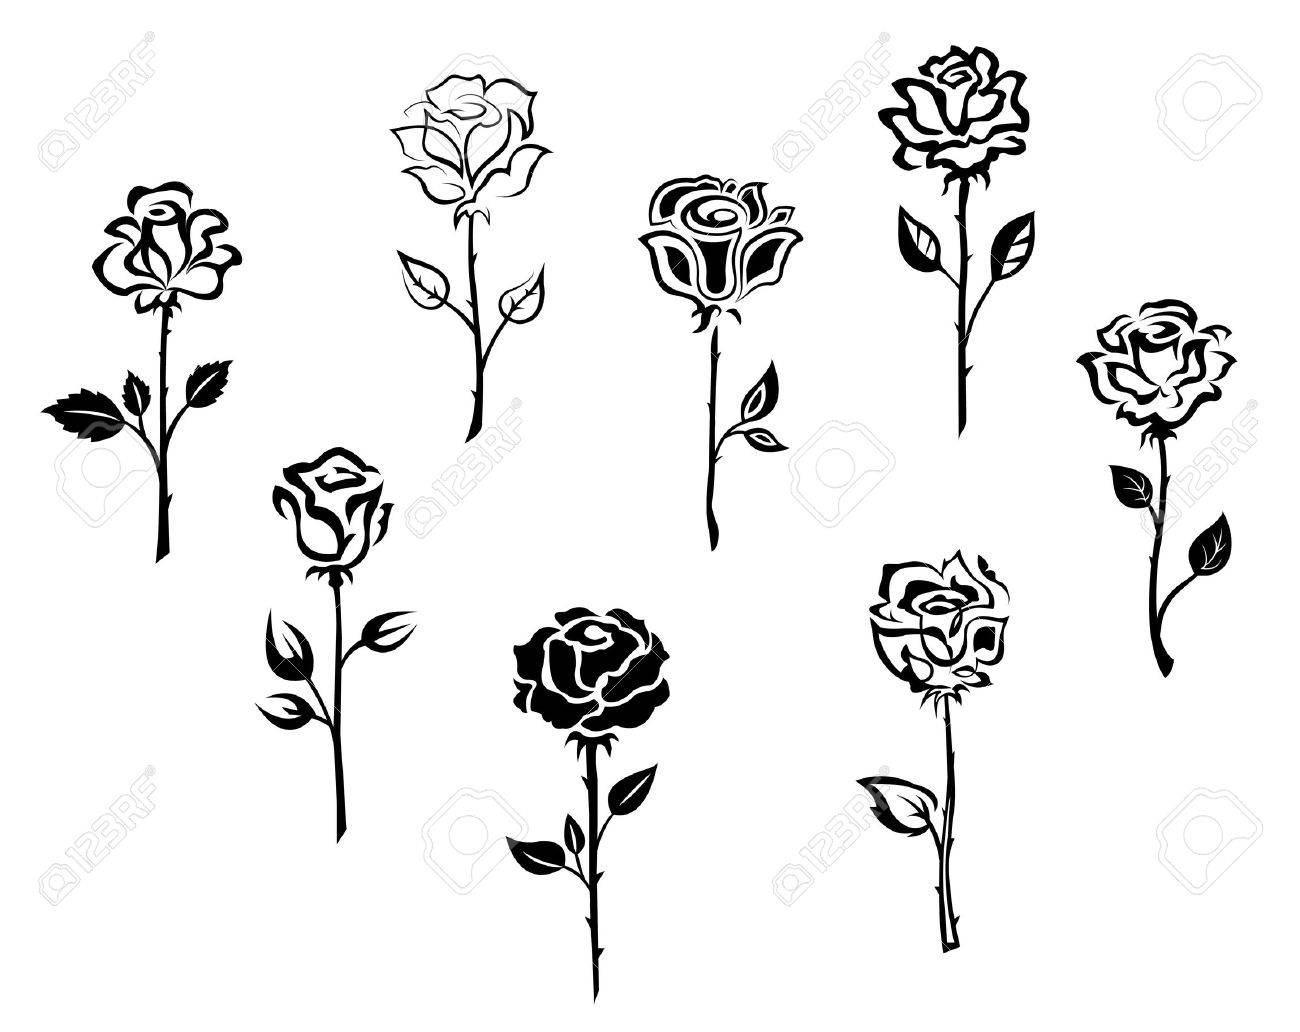 Rose flowers set isolated on white background for holiday or retro design Stock Vector - 16441921